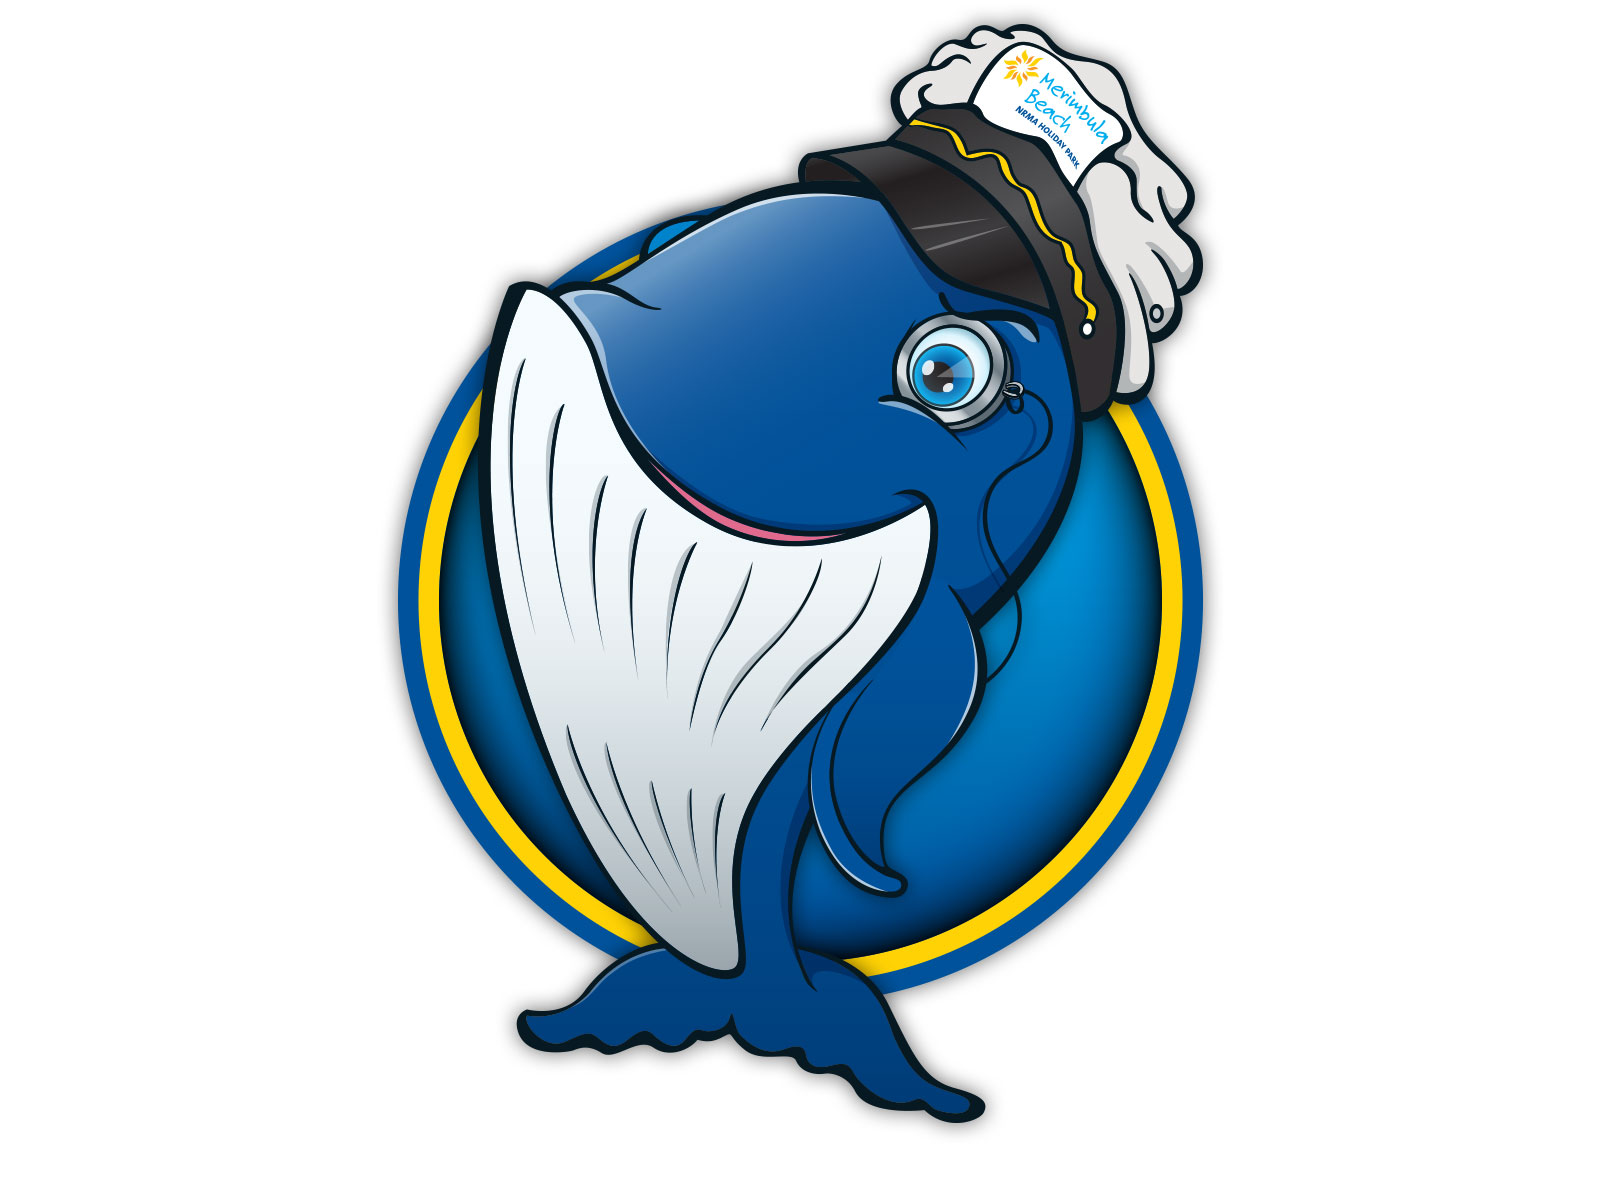 Colourful cartoon style whale character illustration for mascot